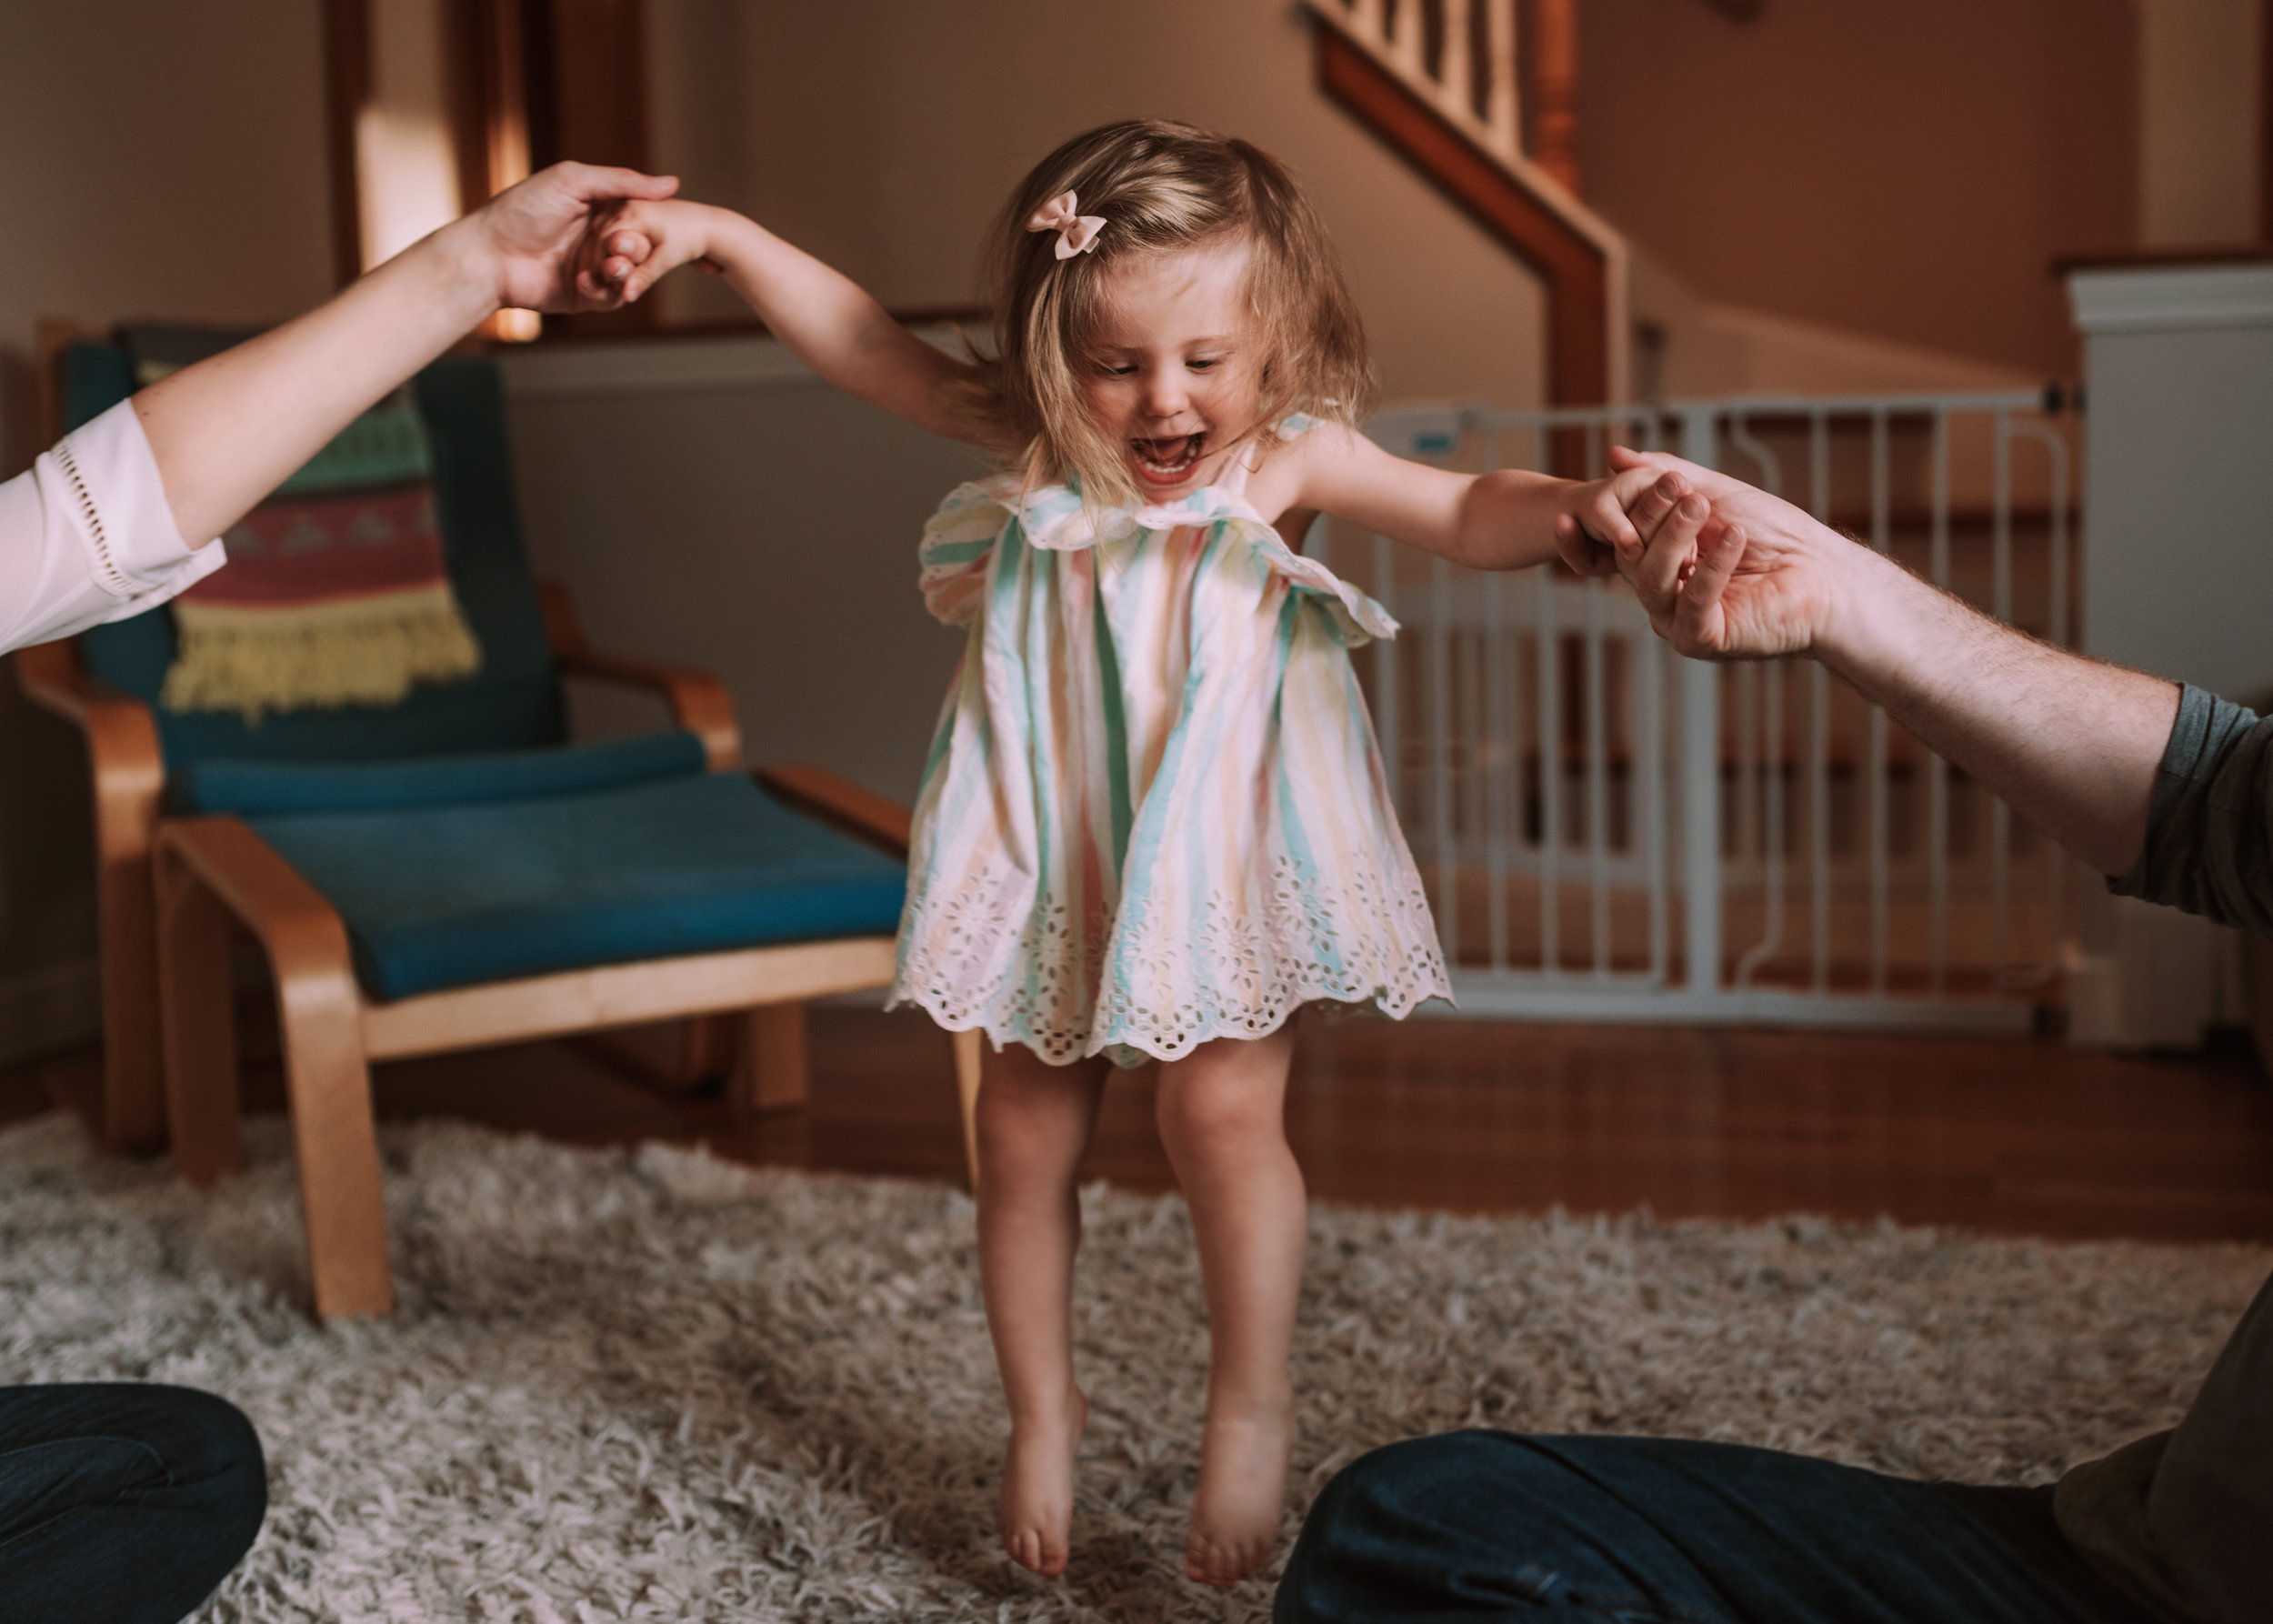 Fun and Relaxed Family Photos at Home in Boston, MA